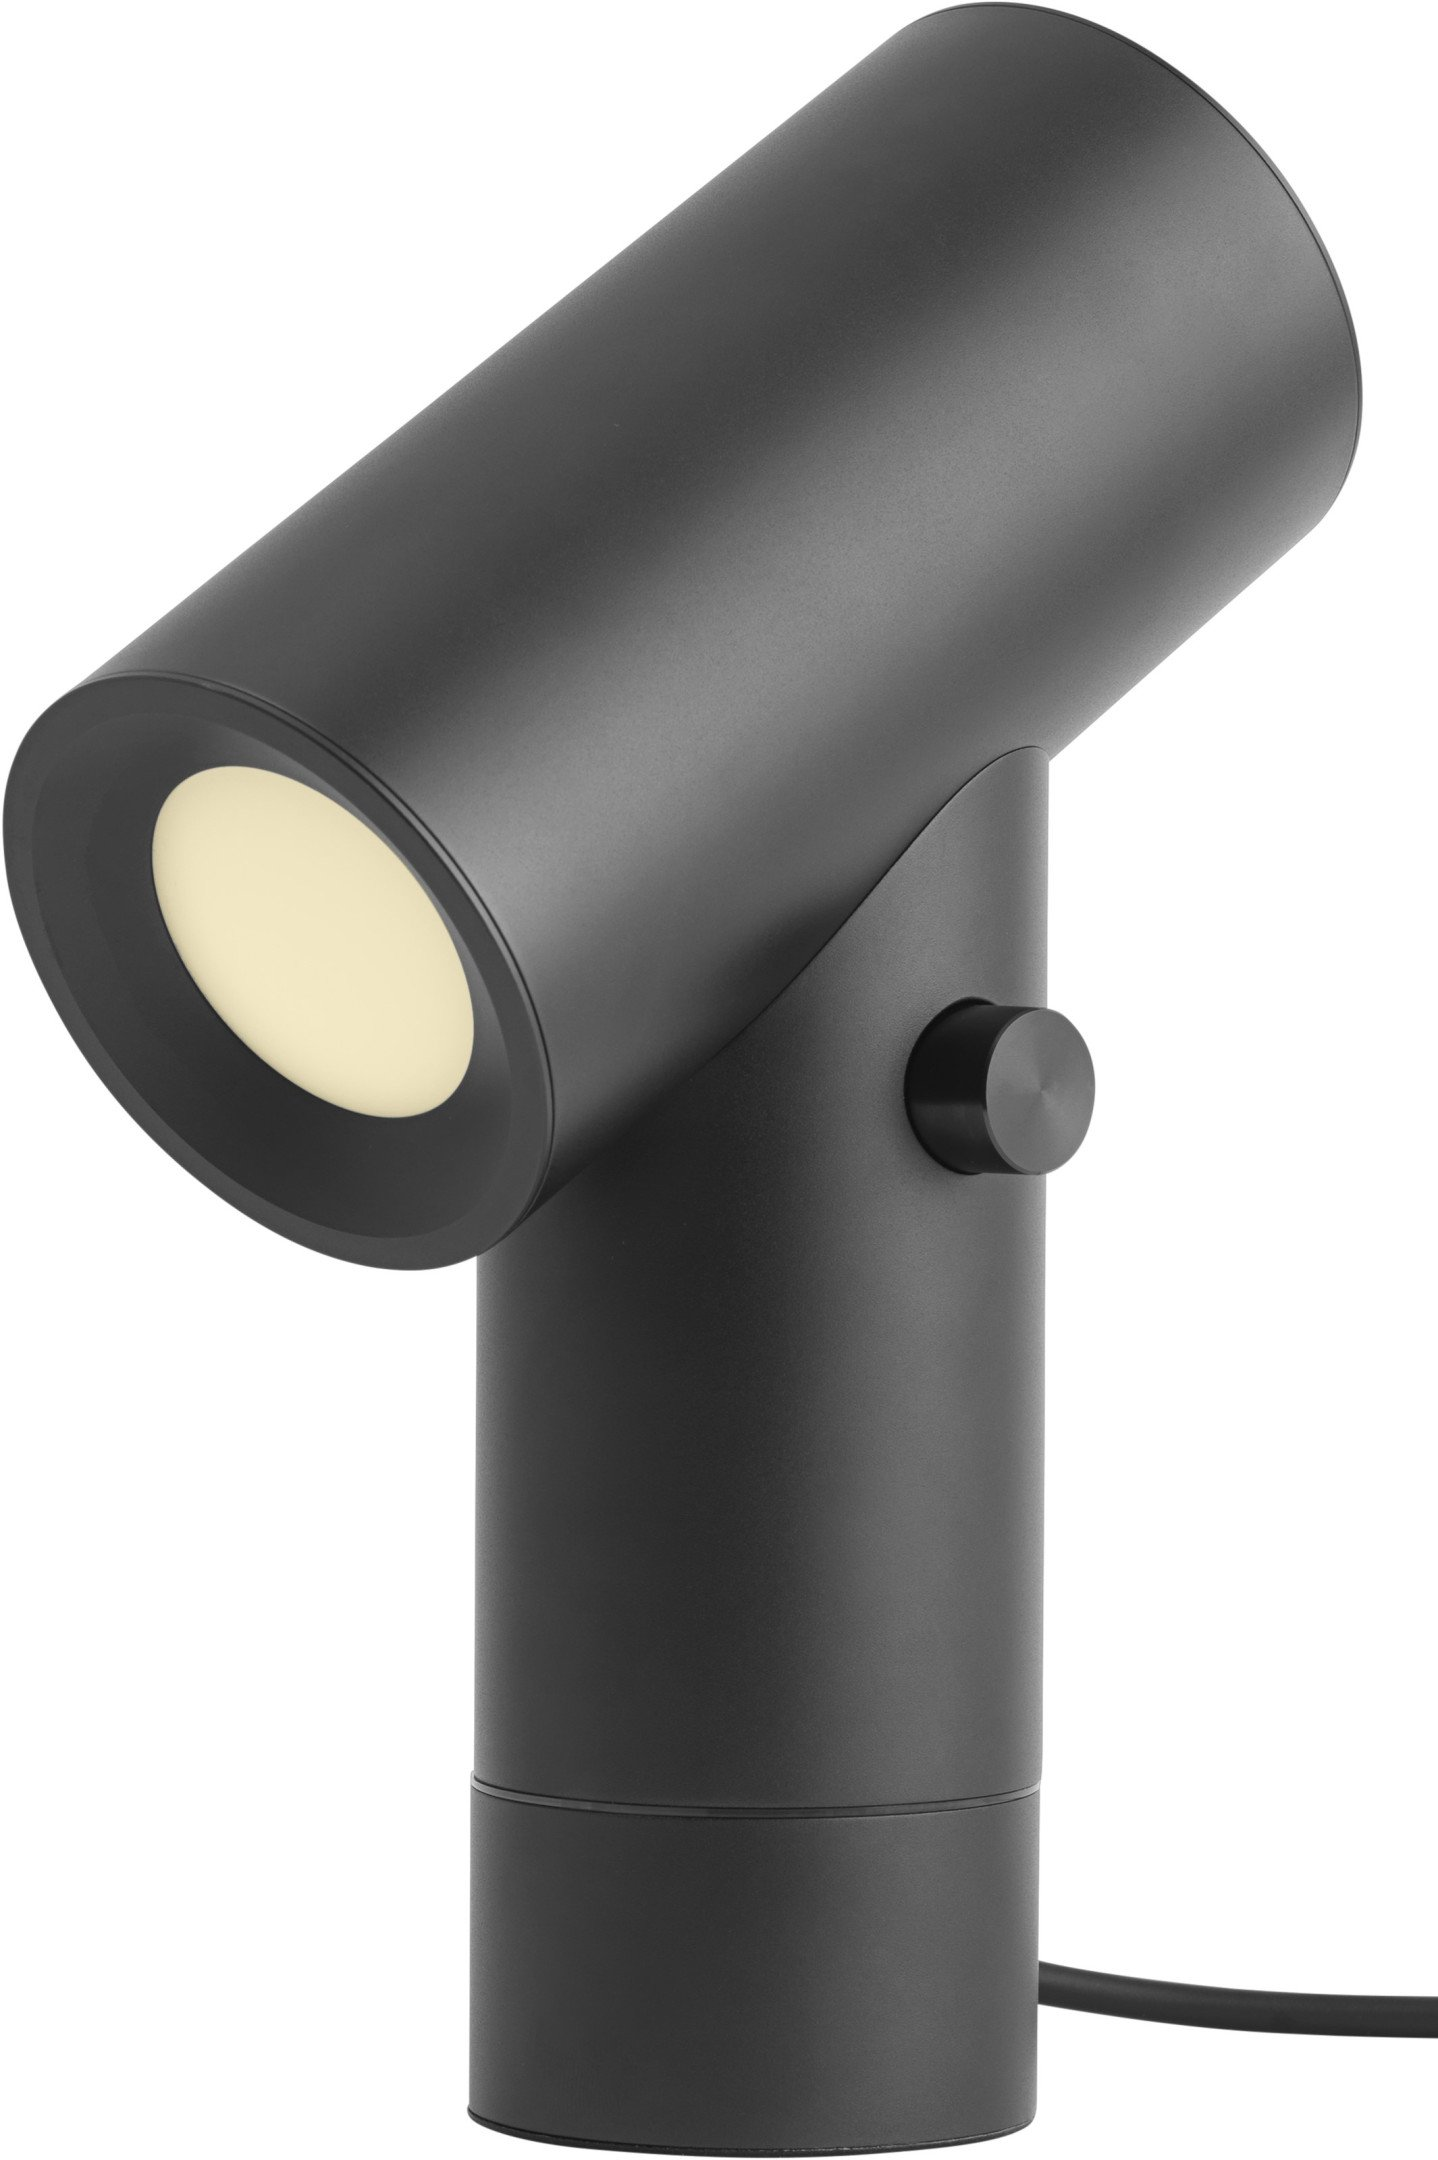 Beam Table Lamp Black by T. Chung for Muuto